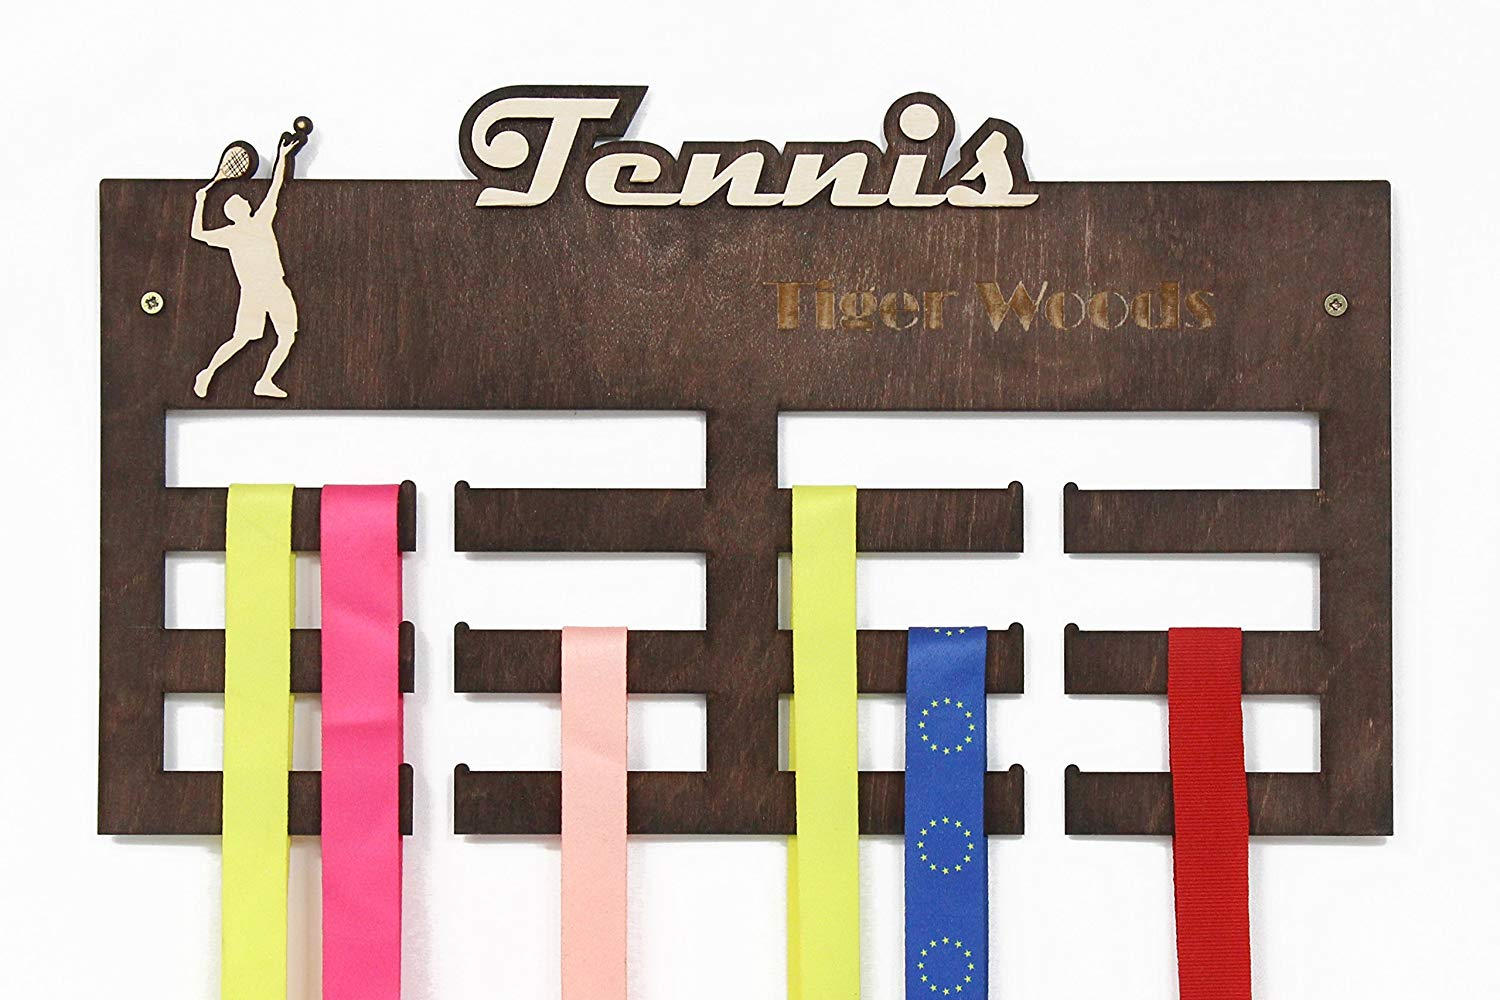 All sports Medal Display, Tennis, Medal Hanger, Medal Display, Medal Rack, Medal Holder, Tennis Gifts, Gift for Boyfriend, Tennis Player, Personalized Medal Hanger